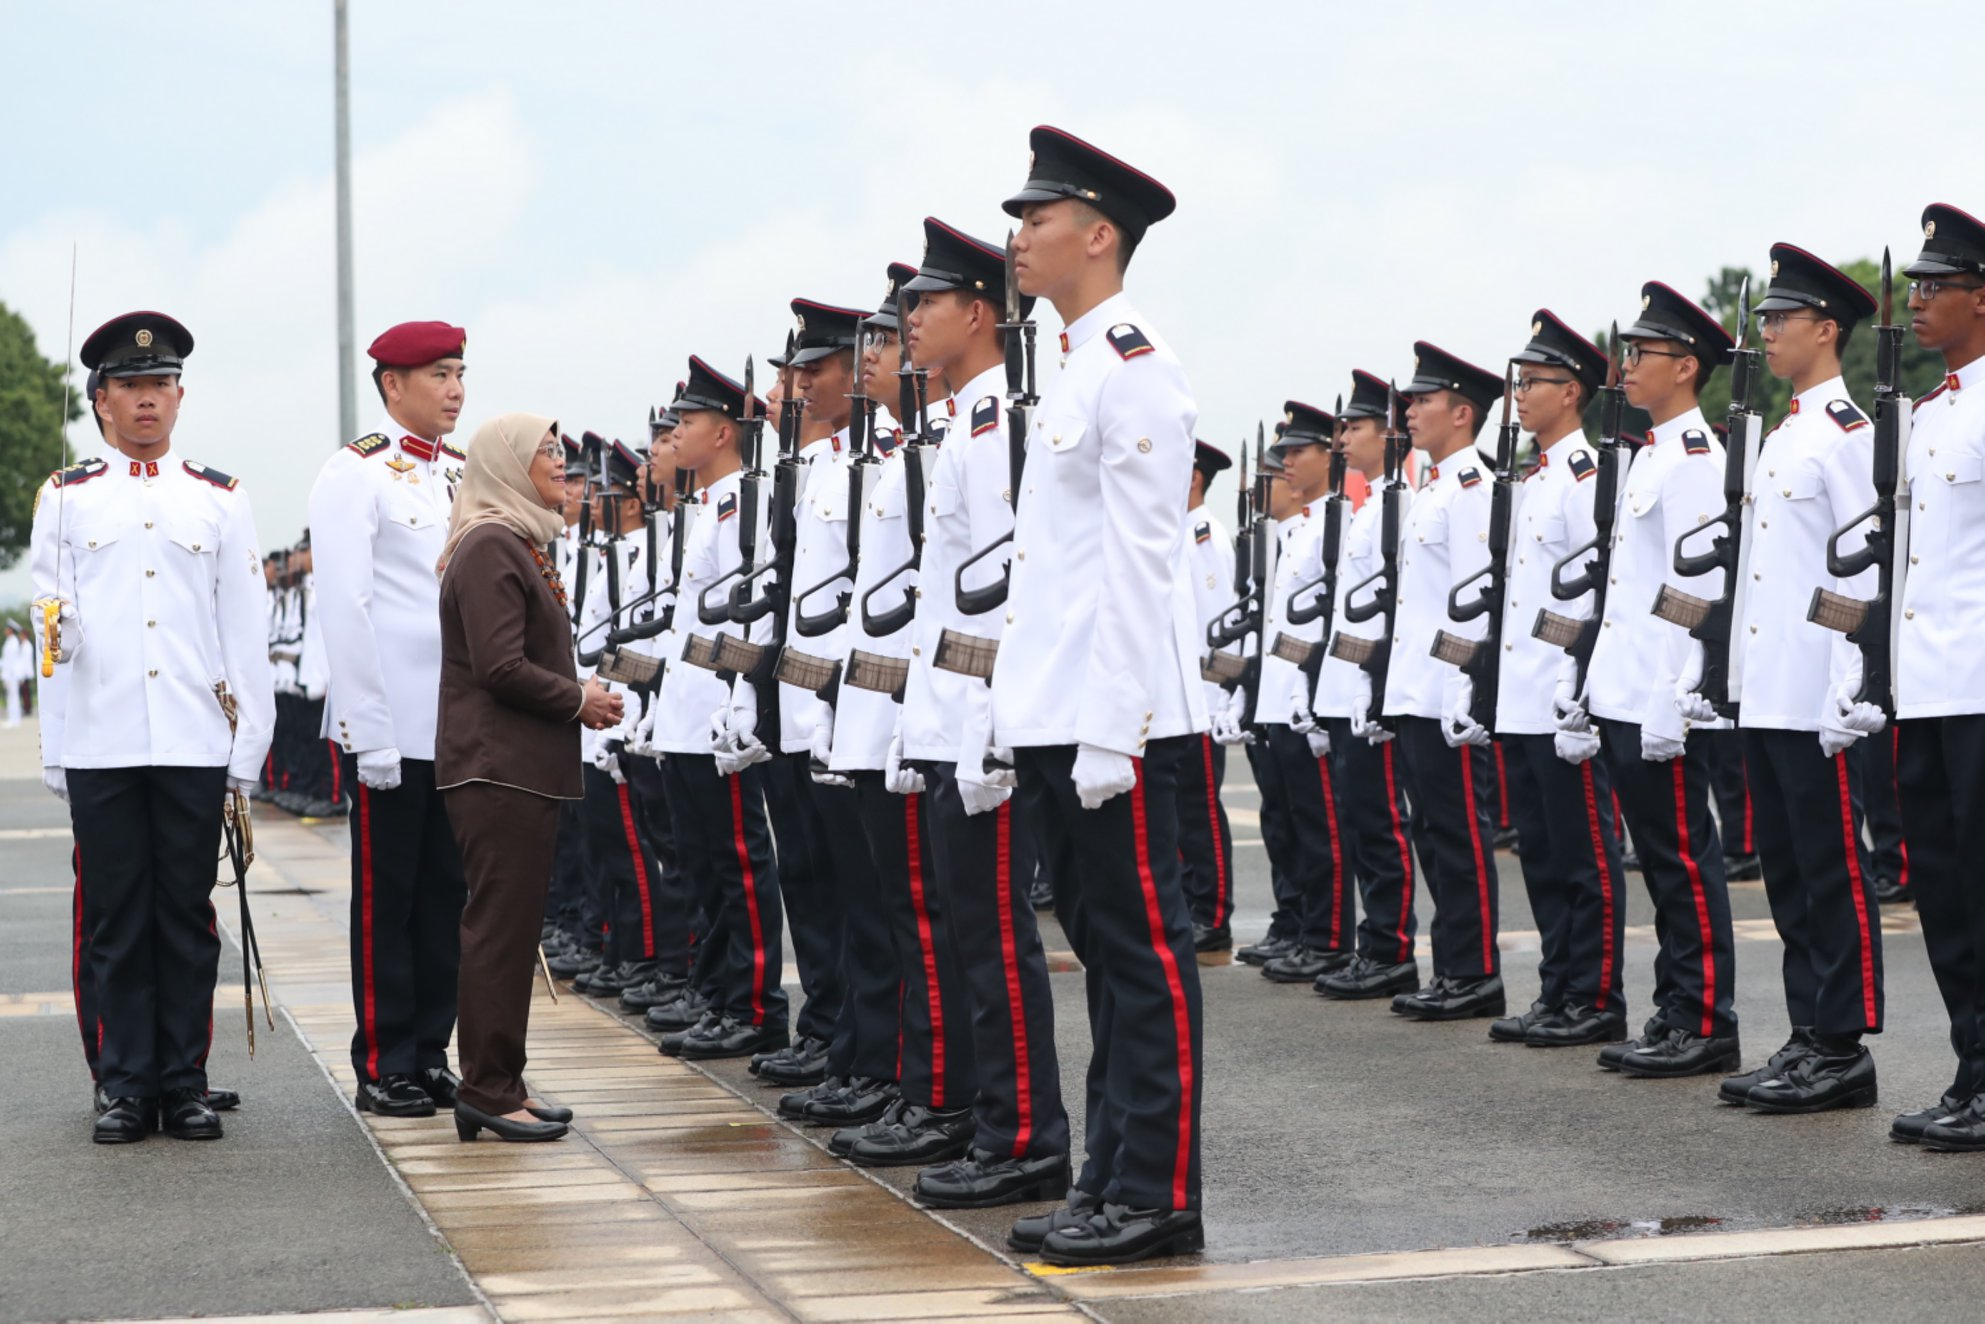 President Halimah Yacob as the Reviewing Officer of the commissioning parade. Photo courtesy: MCI, Clement